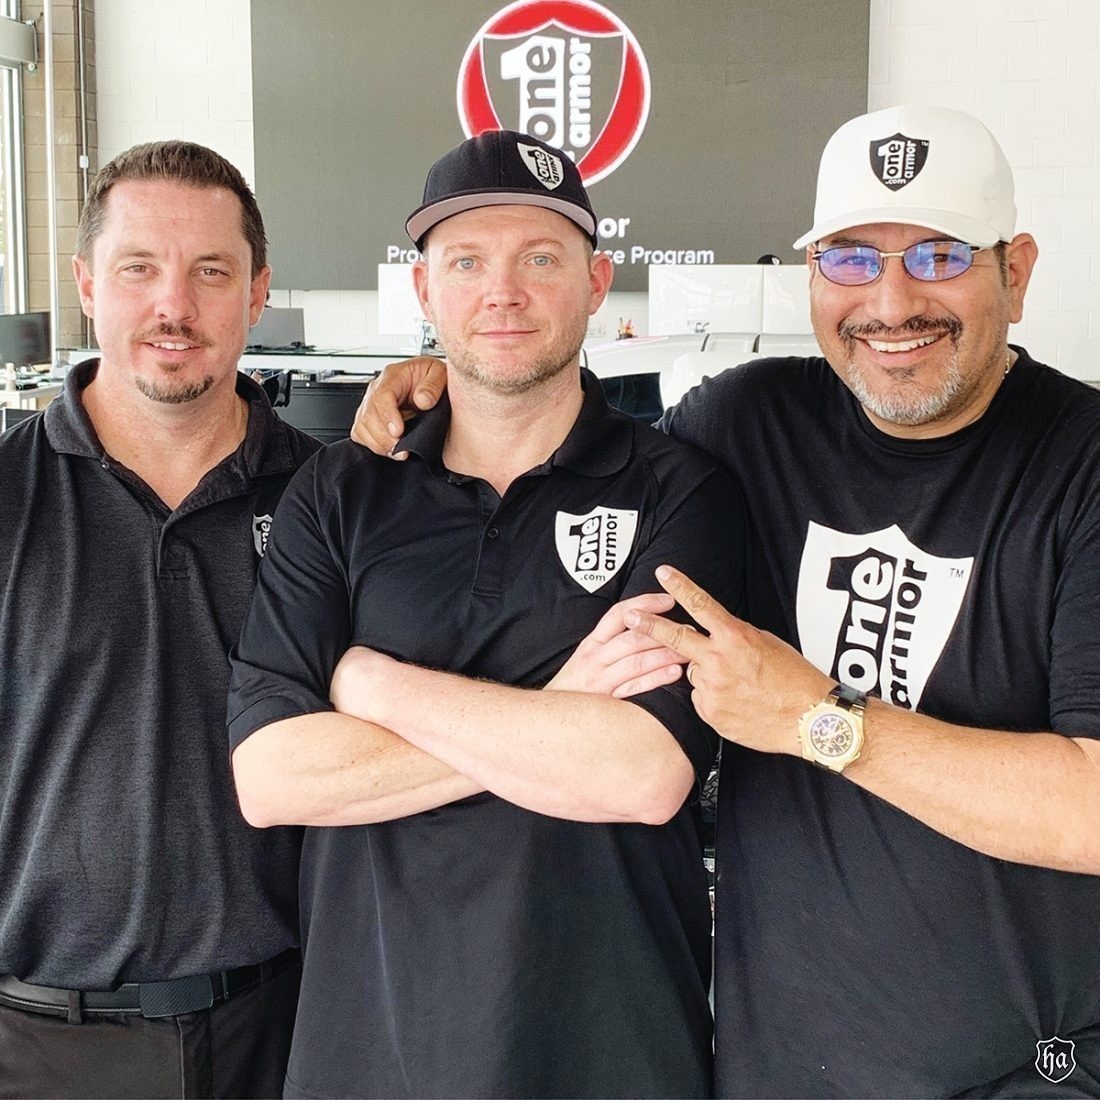 One_Armor_Kenny_Kelly_general_manager_Chris_West_Clear_bra_Hugh_Casiano_owner